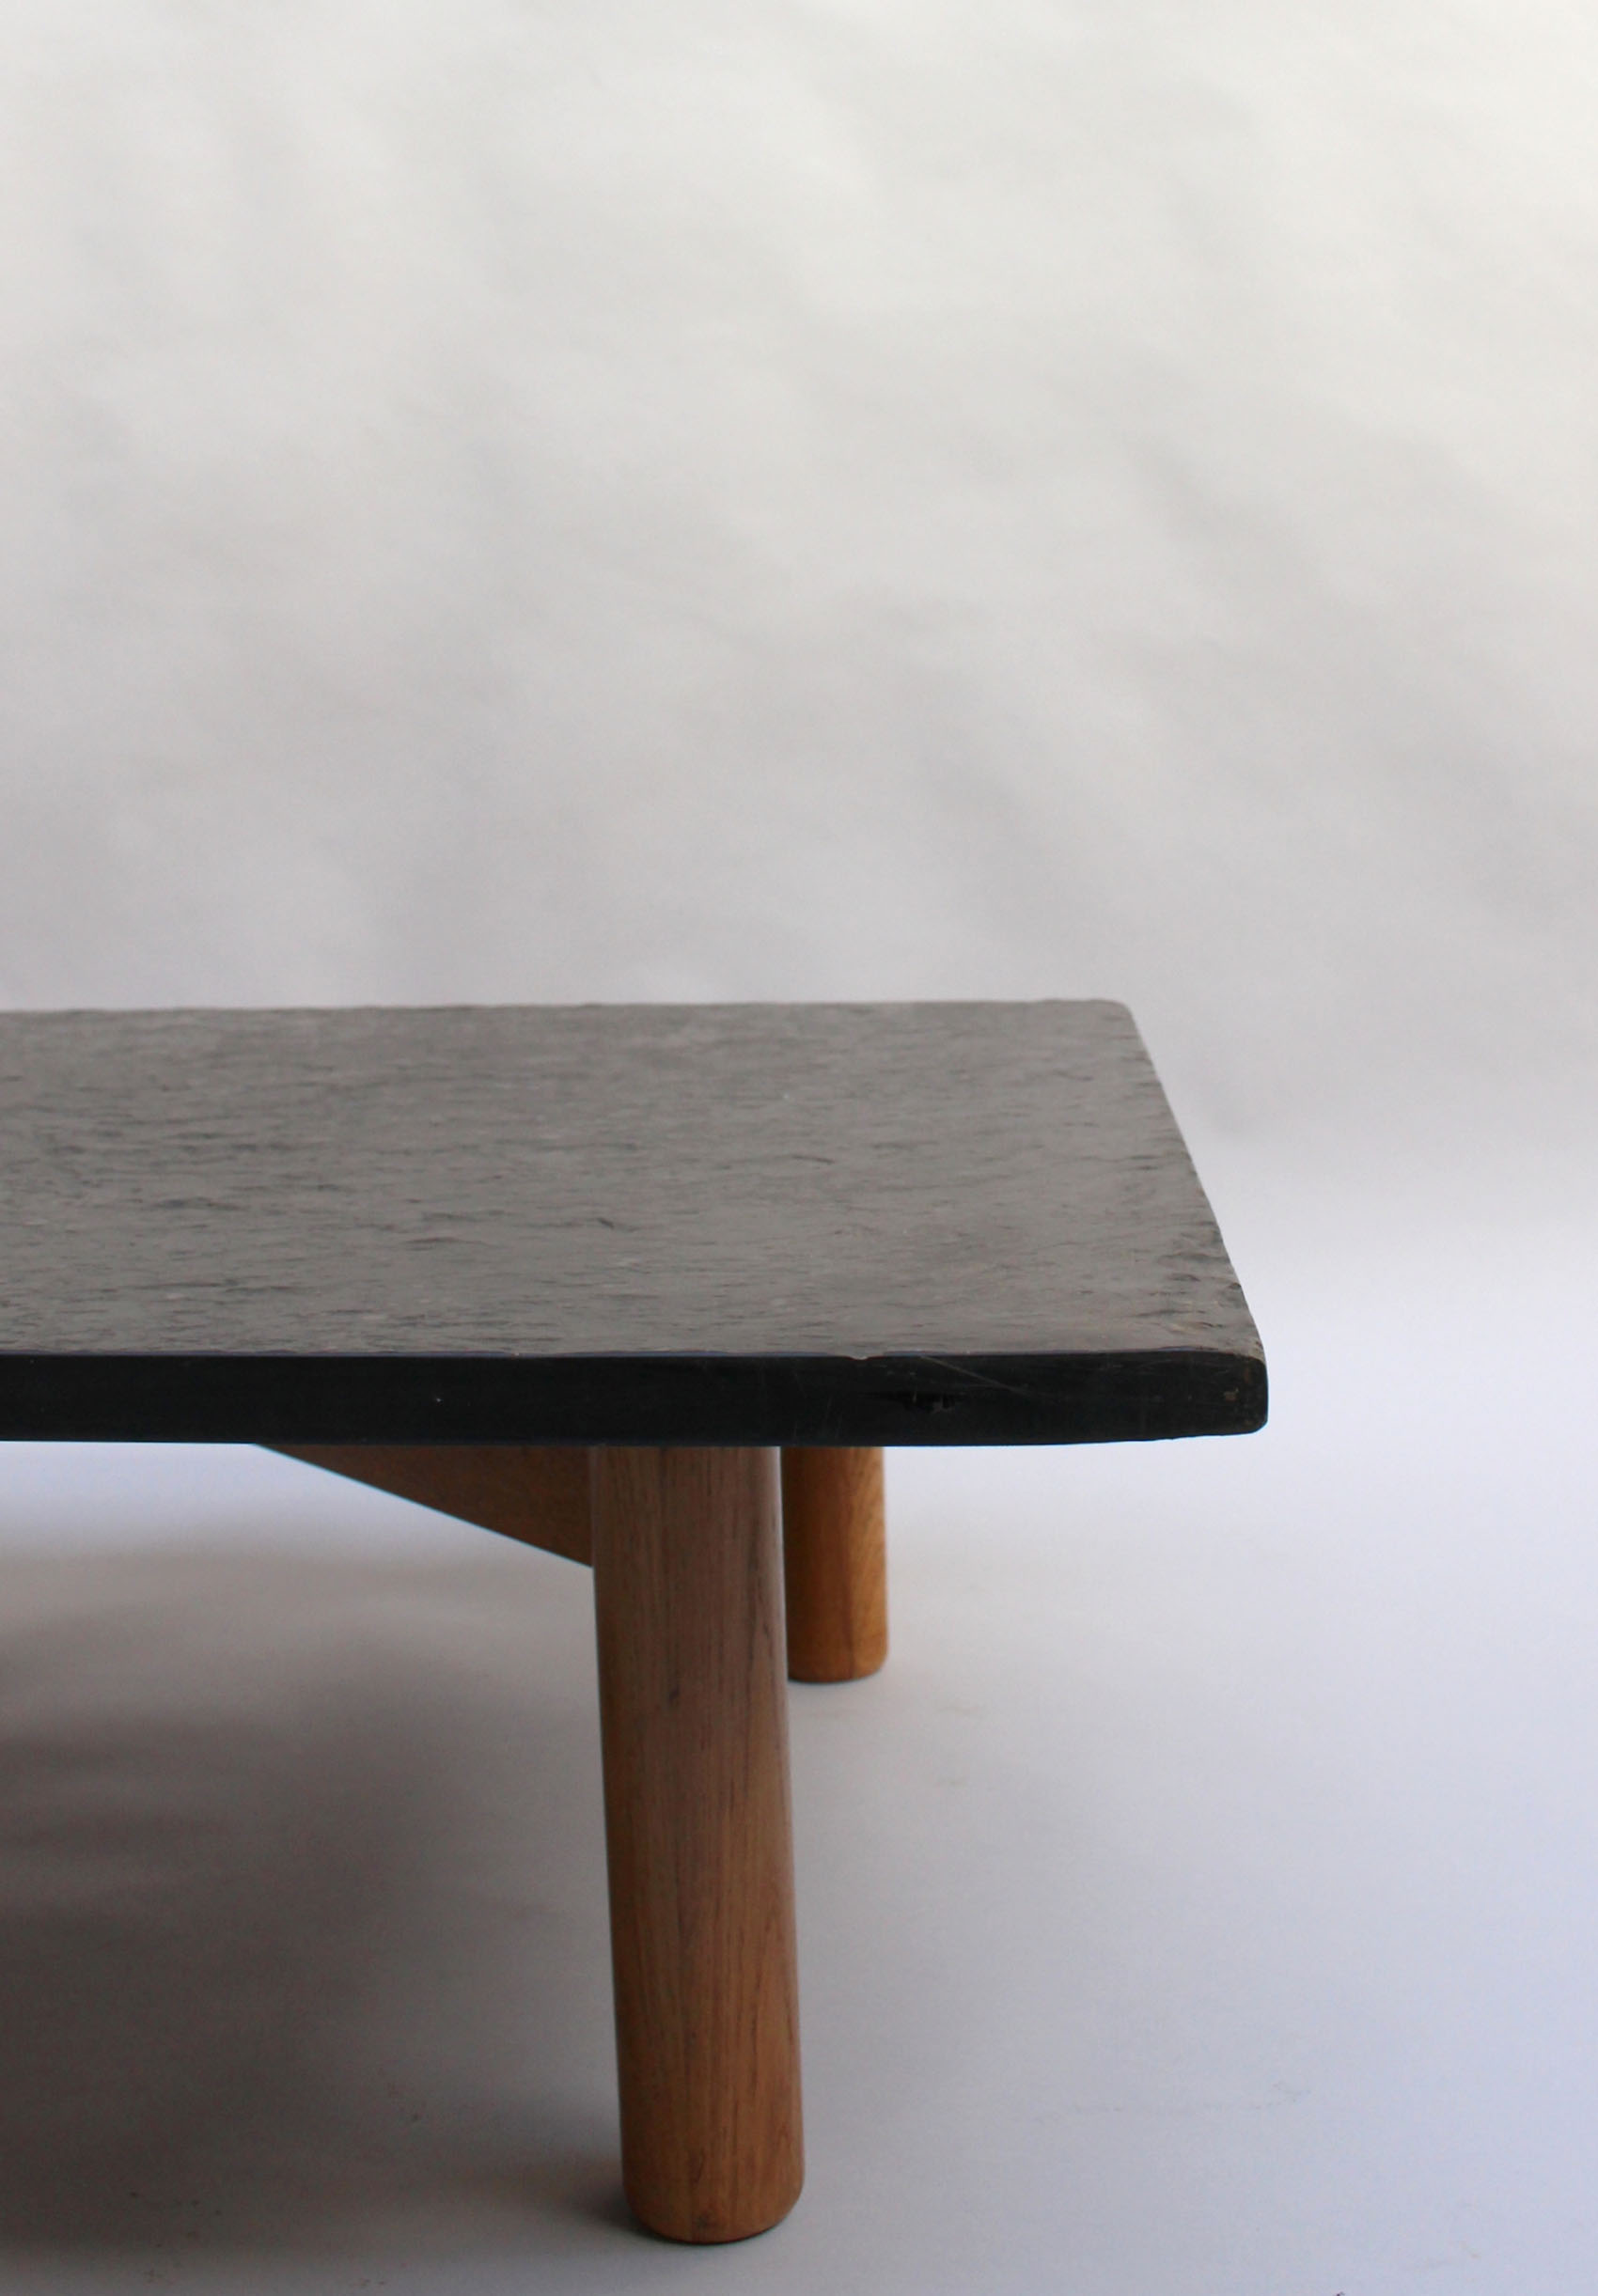 Table Basse En Bois French Midcentury Slate And Oak Coffee Table